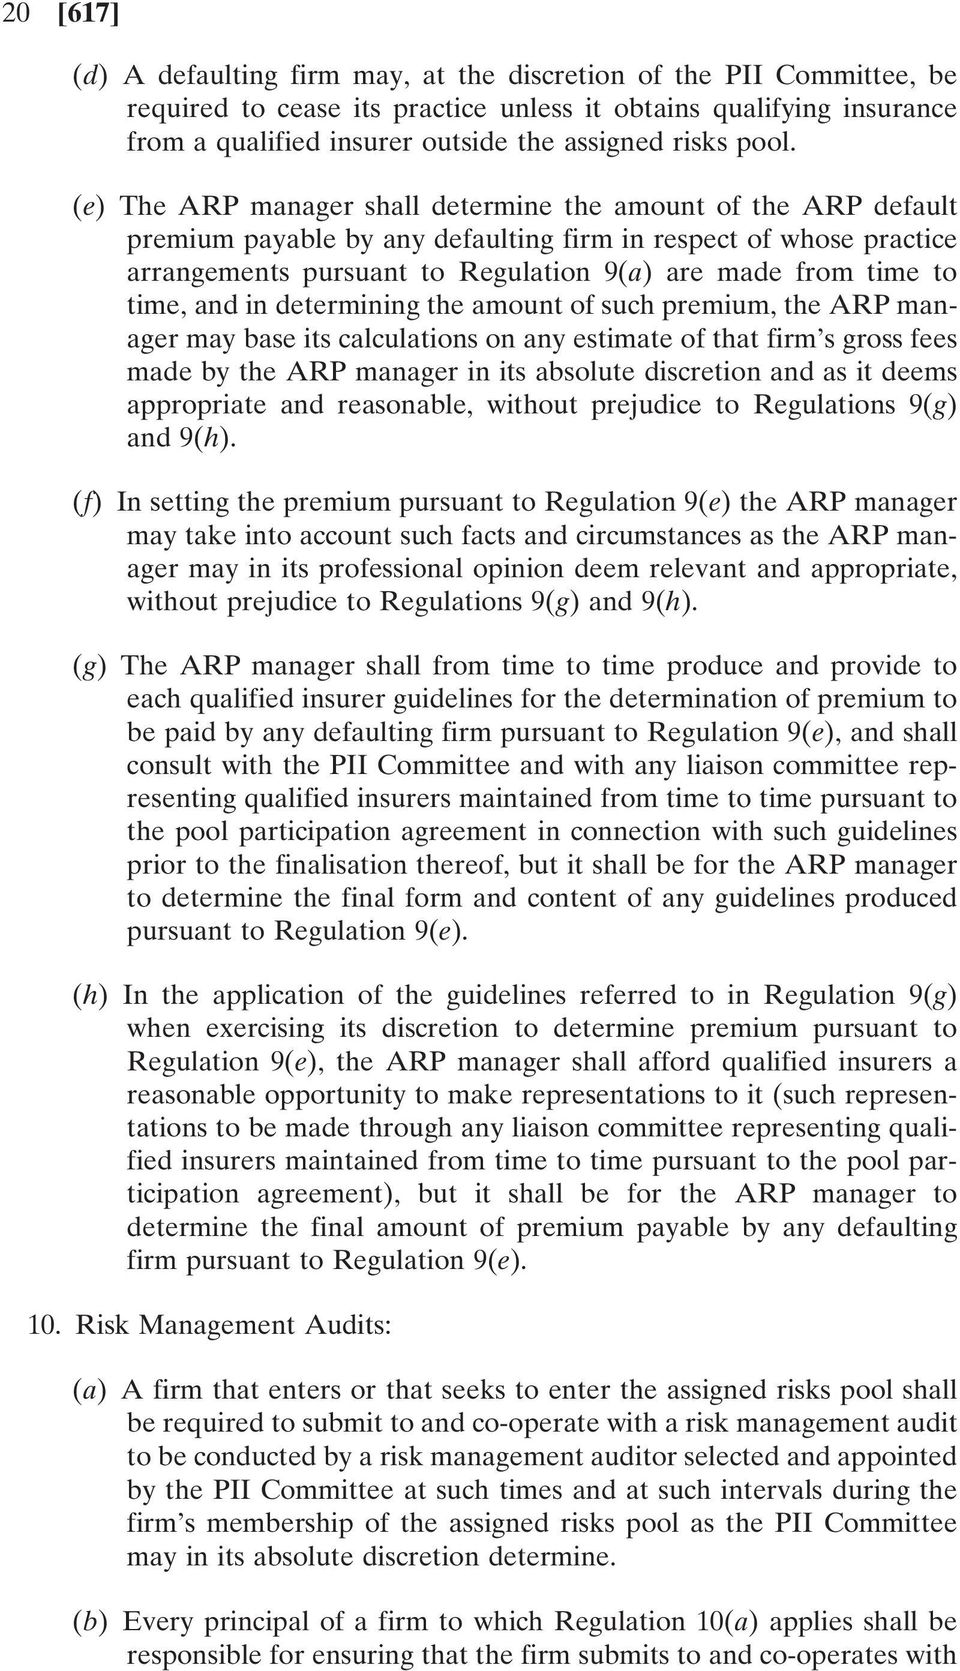 (e) The ARP manager shall determine the amount of the ARP default premium payable by any defaulting firm in respect of whose practice arrangements pursuant to Regulation 9(a) are made from time to